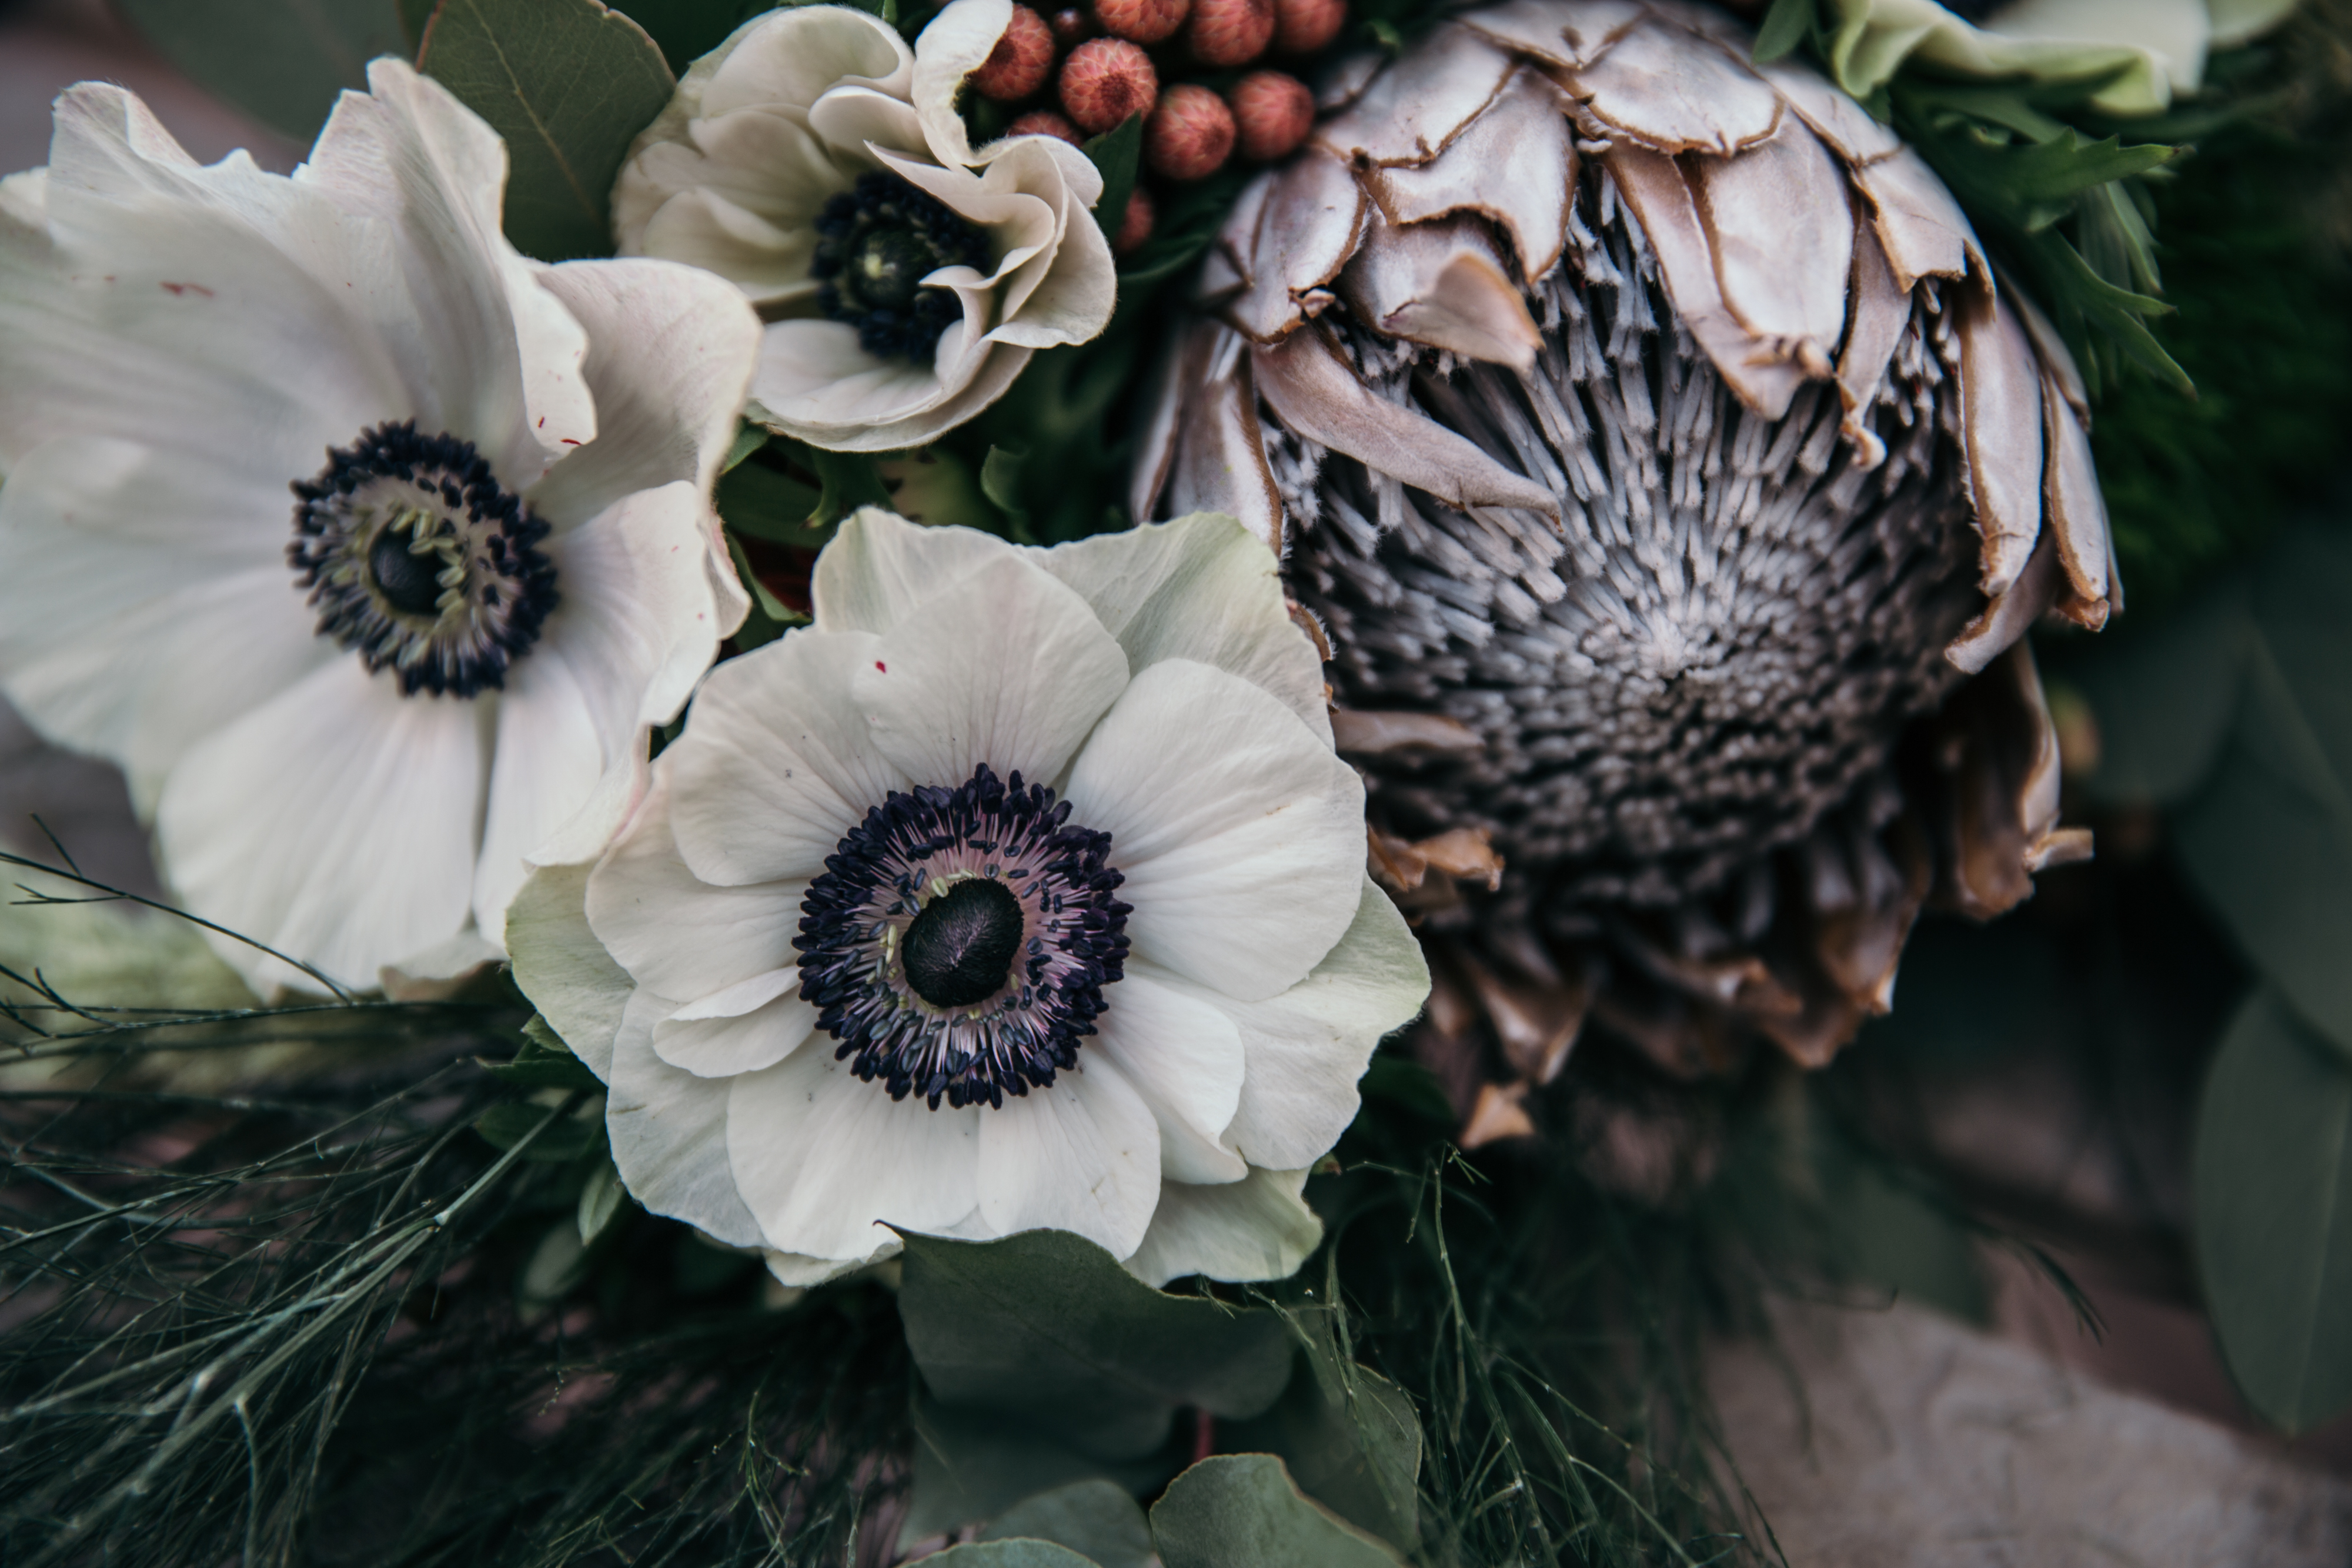 Anemone and Protea